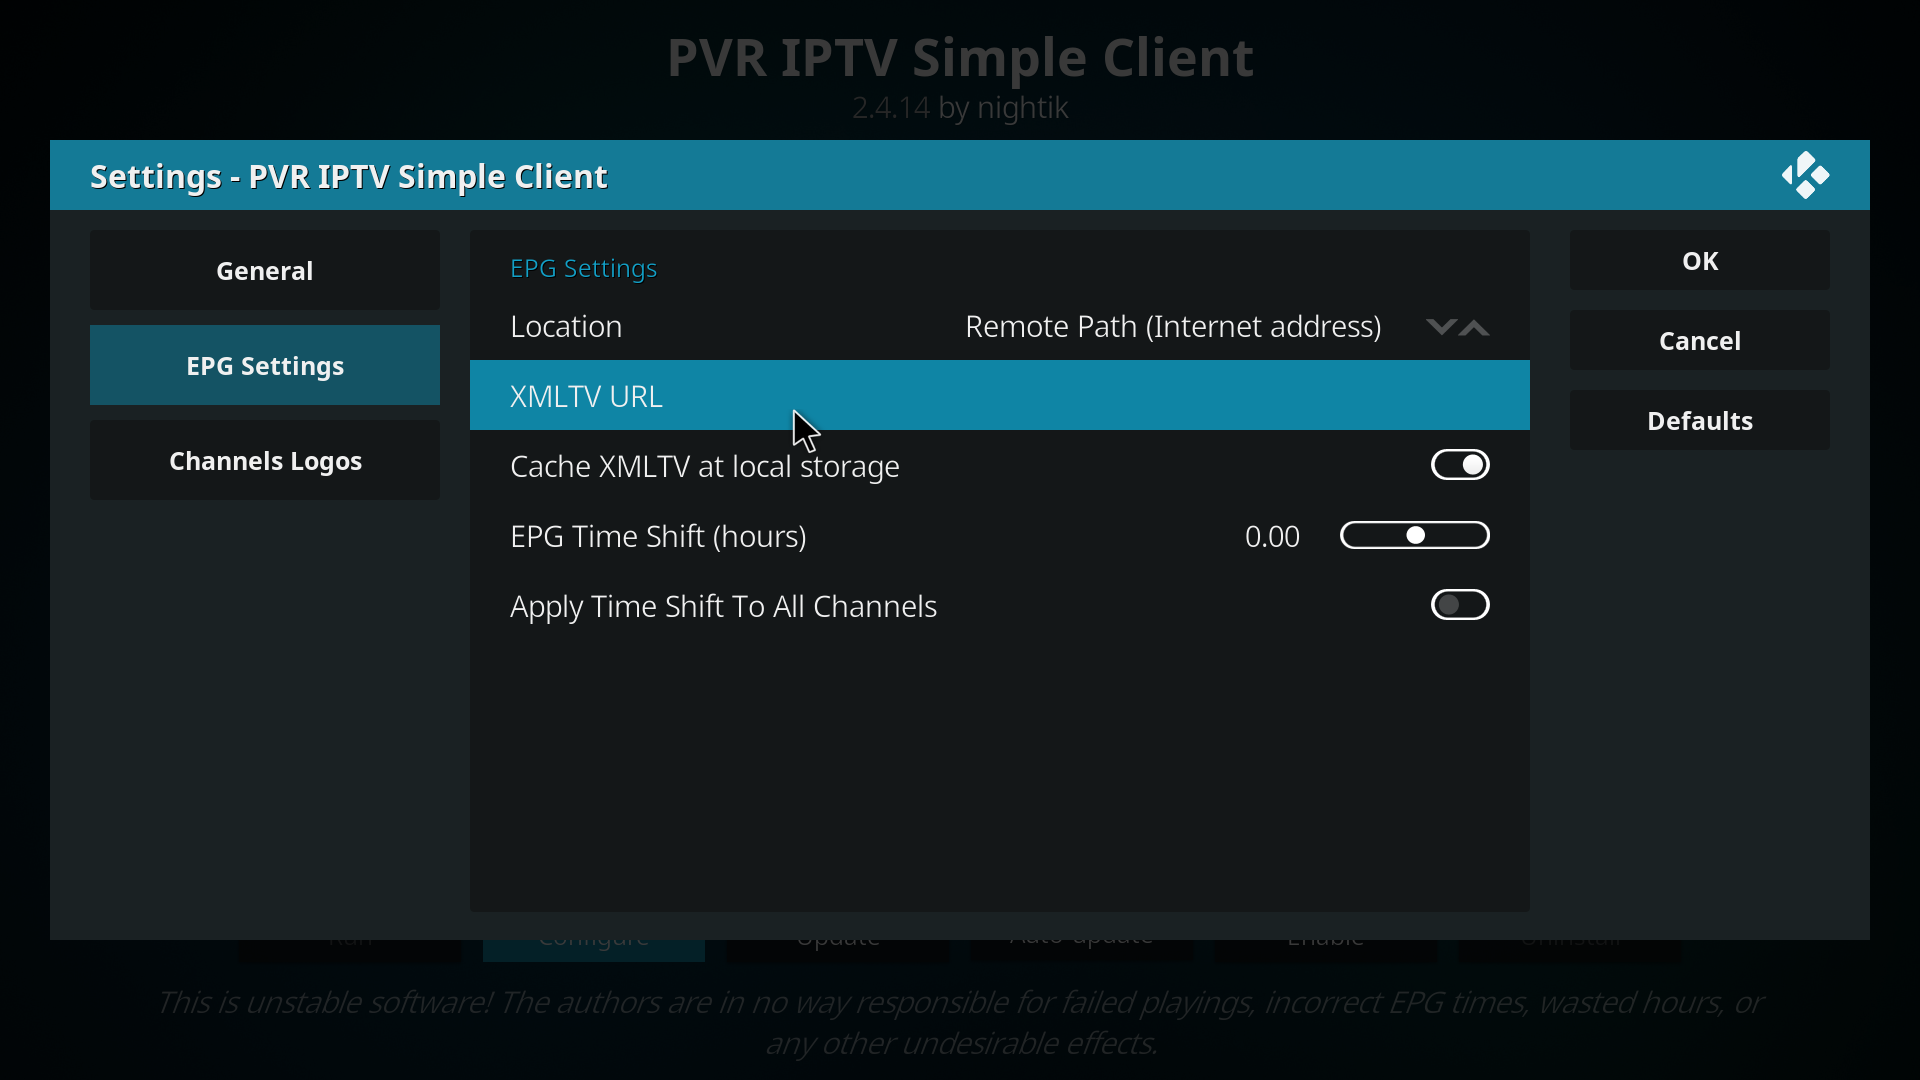 Kodi PVR IPTV Simple Client With EPG - Knowledgebase